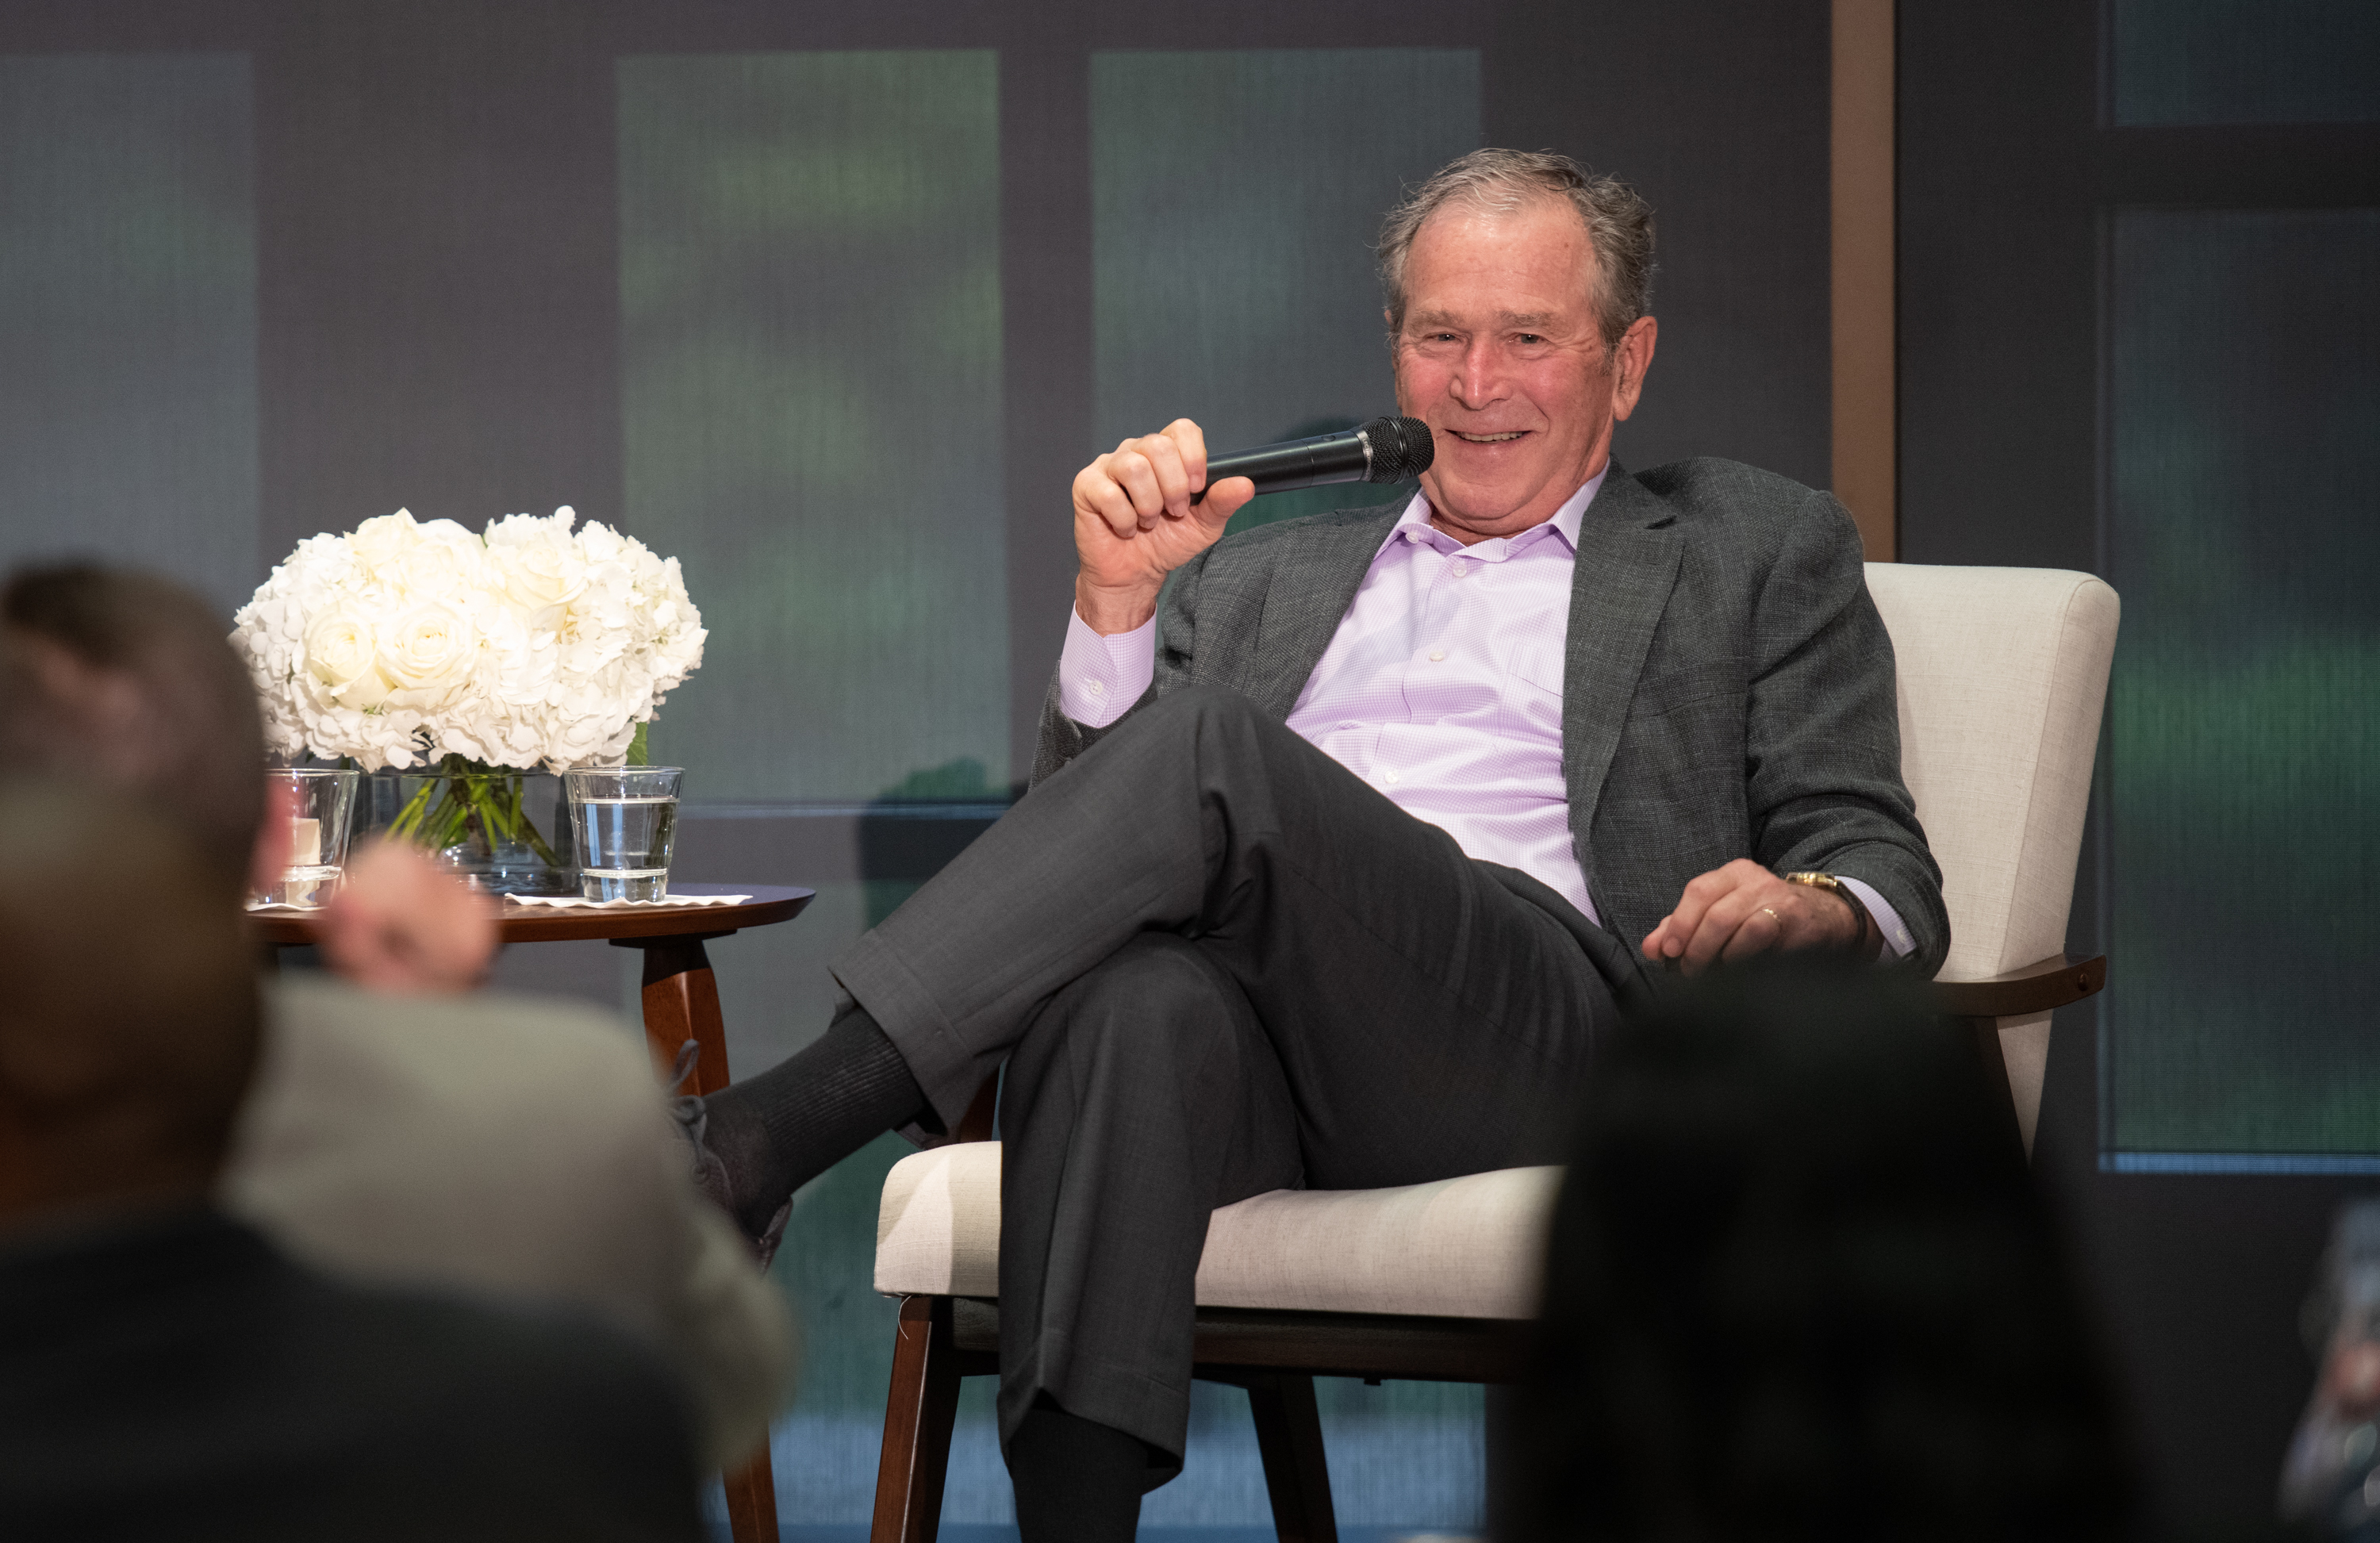 Leaders Know Where They Want to Go: A Conversation with President George W. Bush